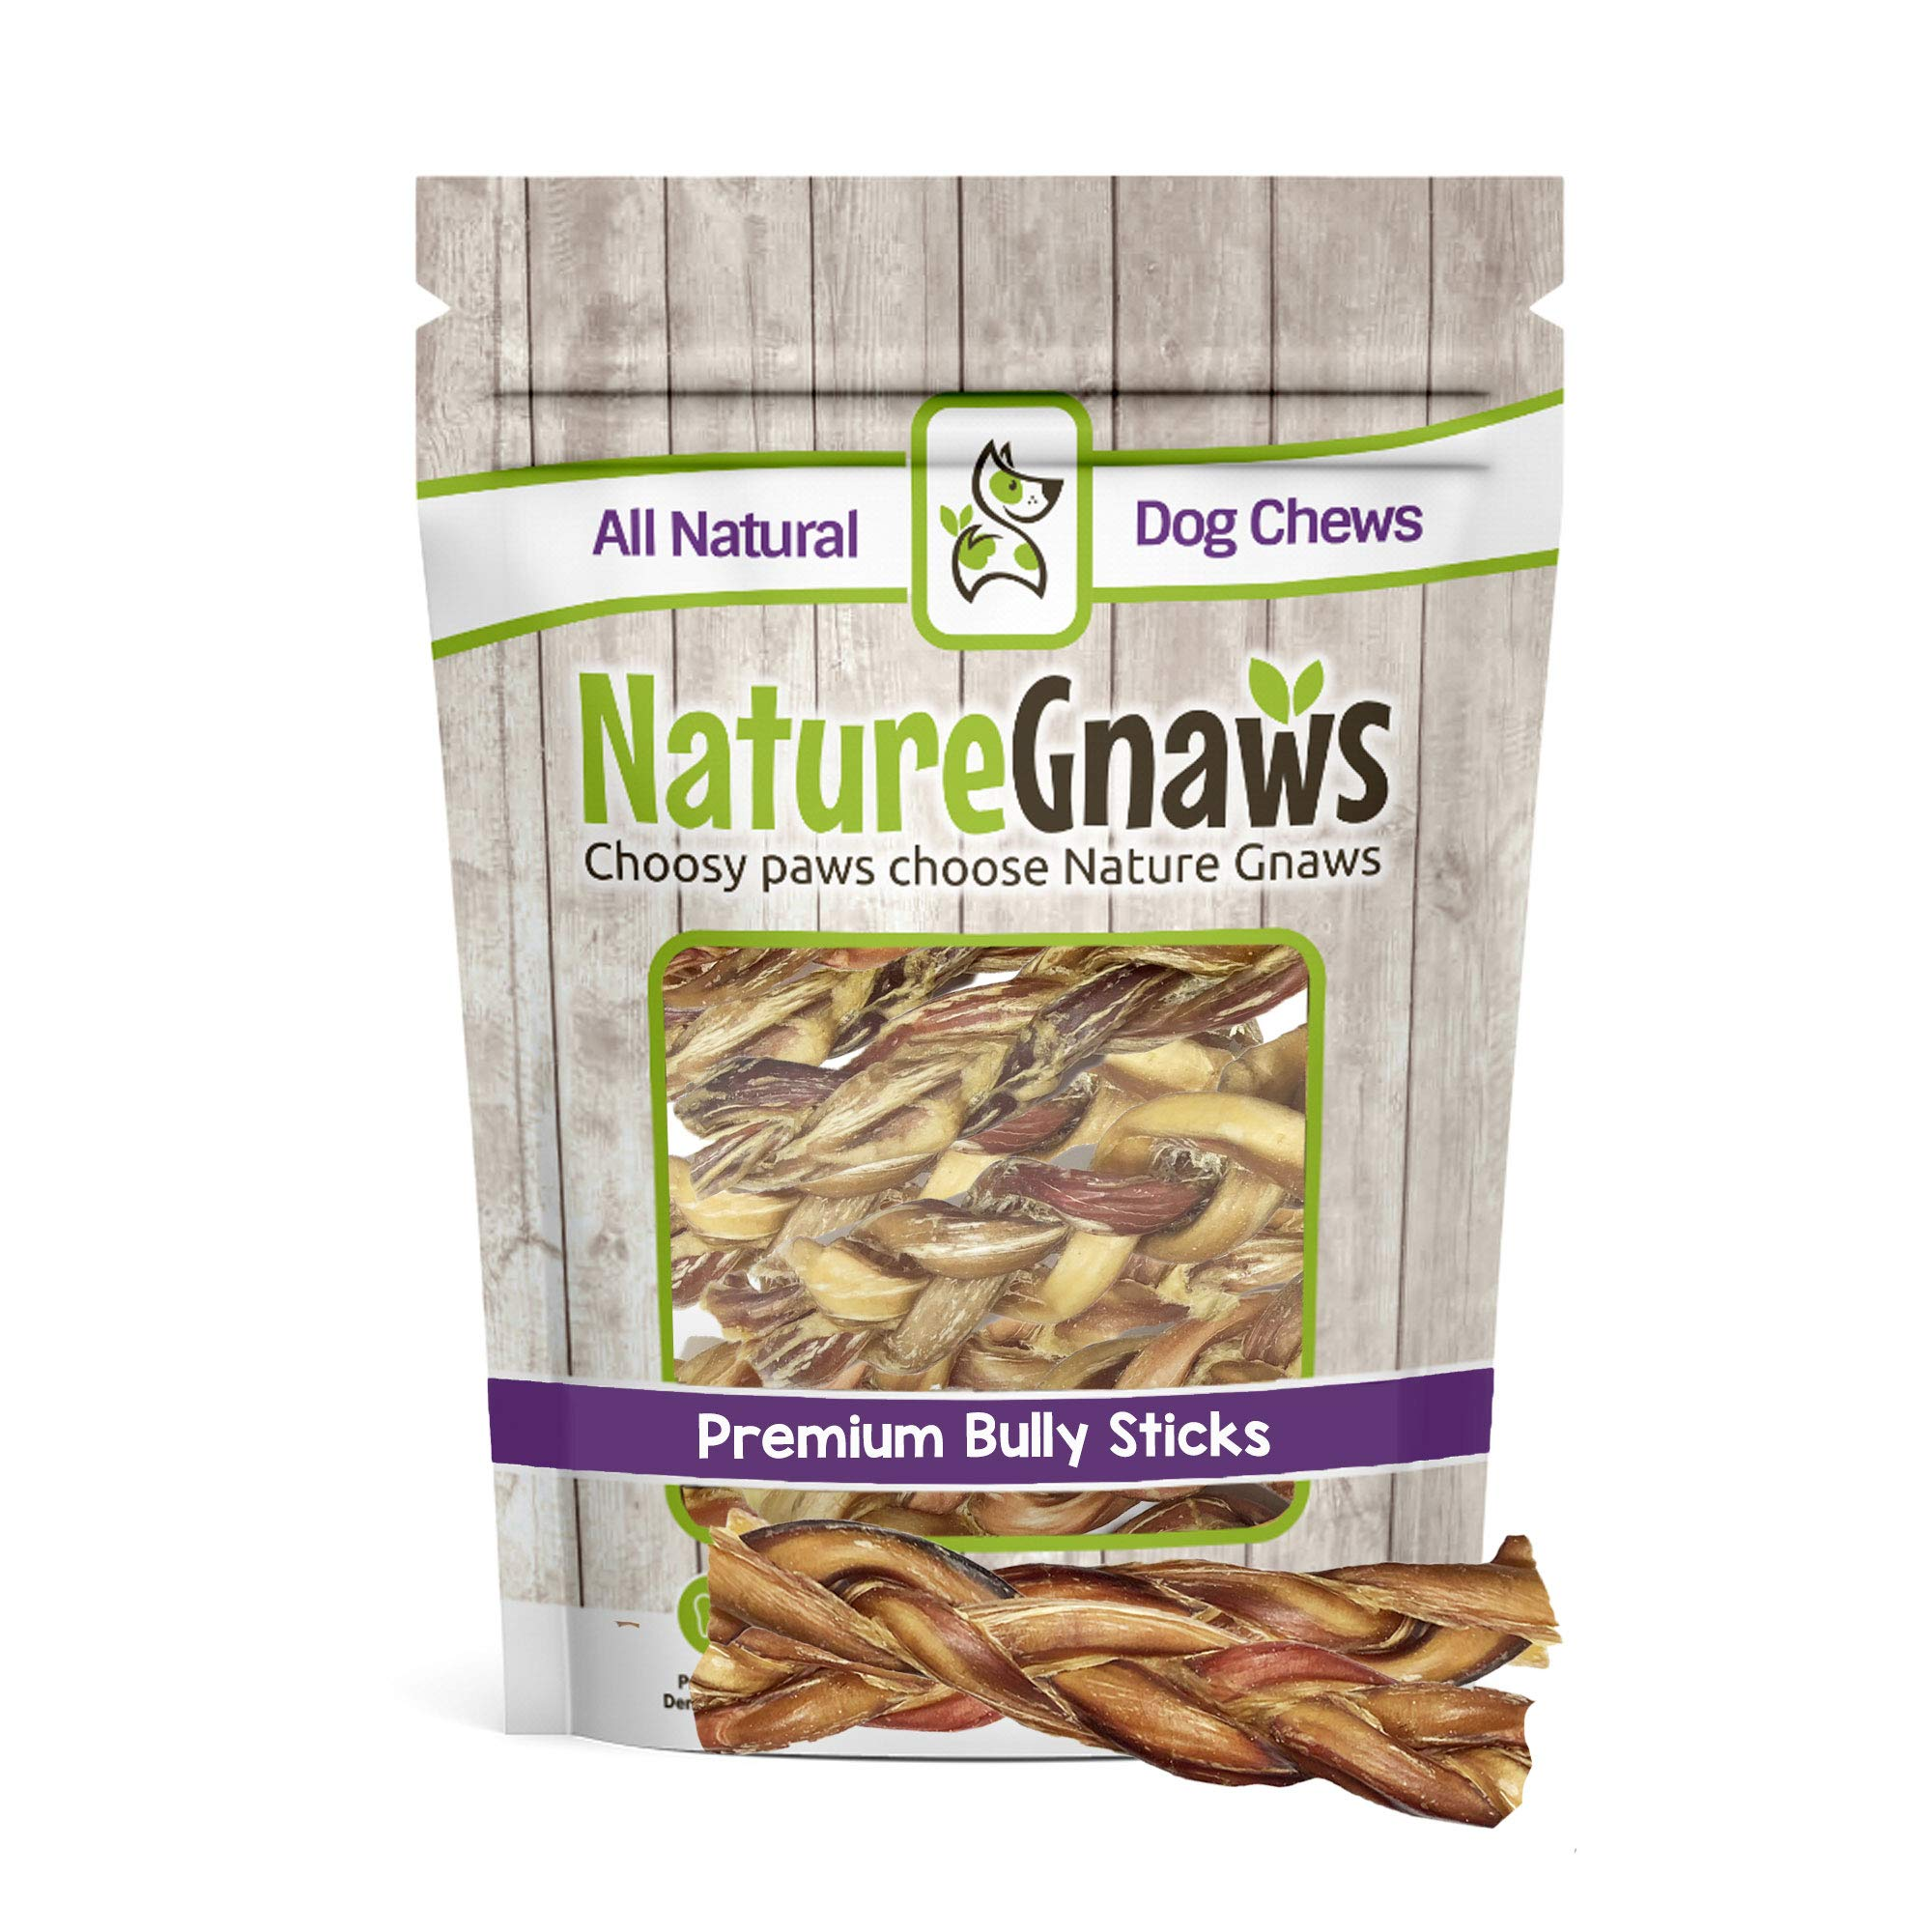 Nature Gnaws Braided Bully Sticks 5-6 inch (10 Pack) - 100% Natural Grass-Fed Free-Range Premium Beef Dog Chews